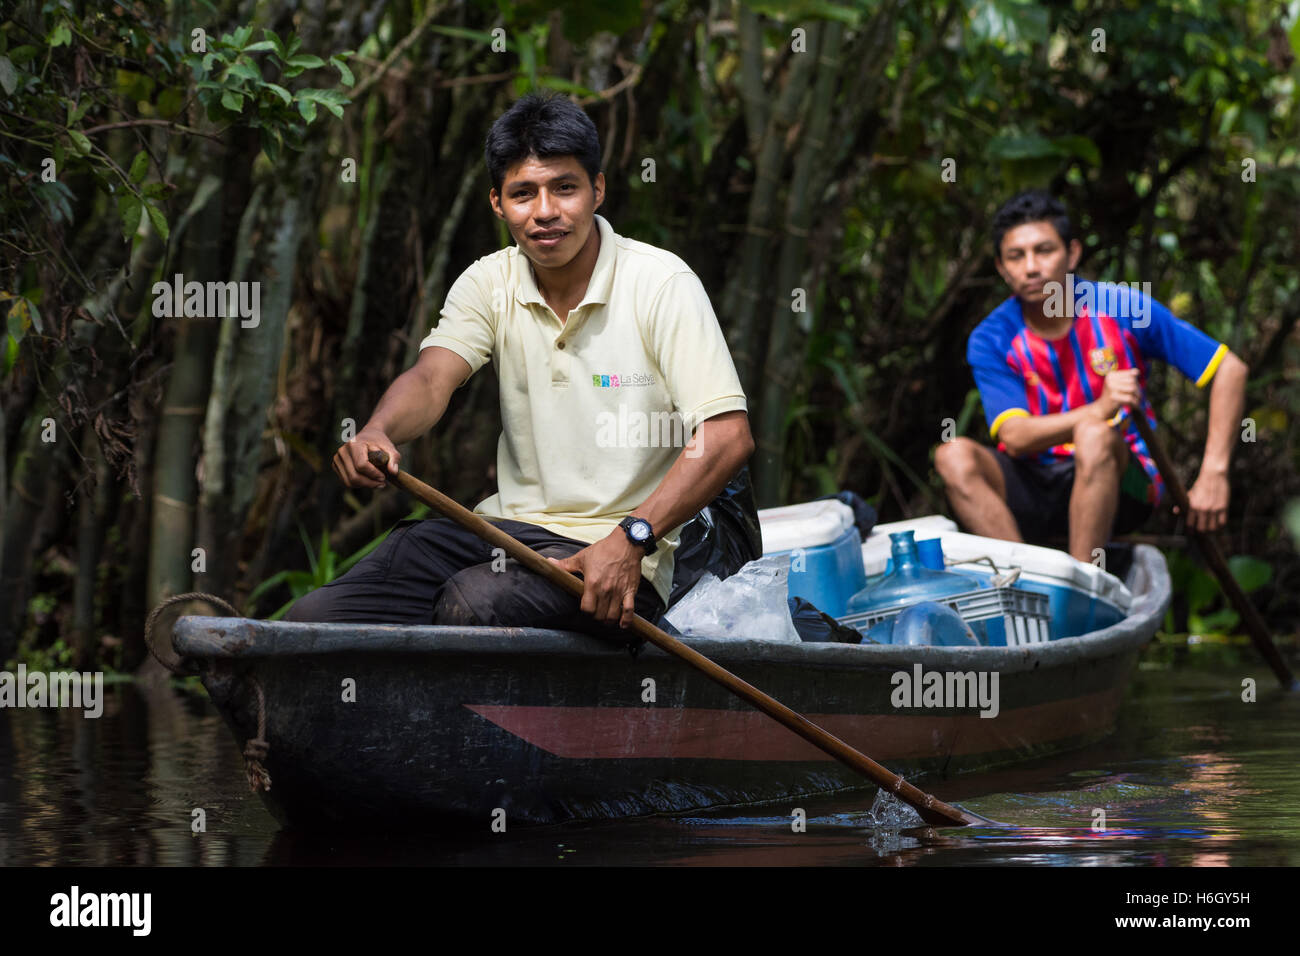 Native Kichwa people deliver goods on a canoe in the Amazons. Yasuni National Park, Ecuador. - Stock Image